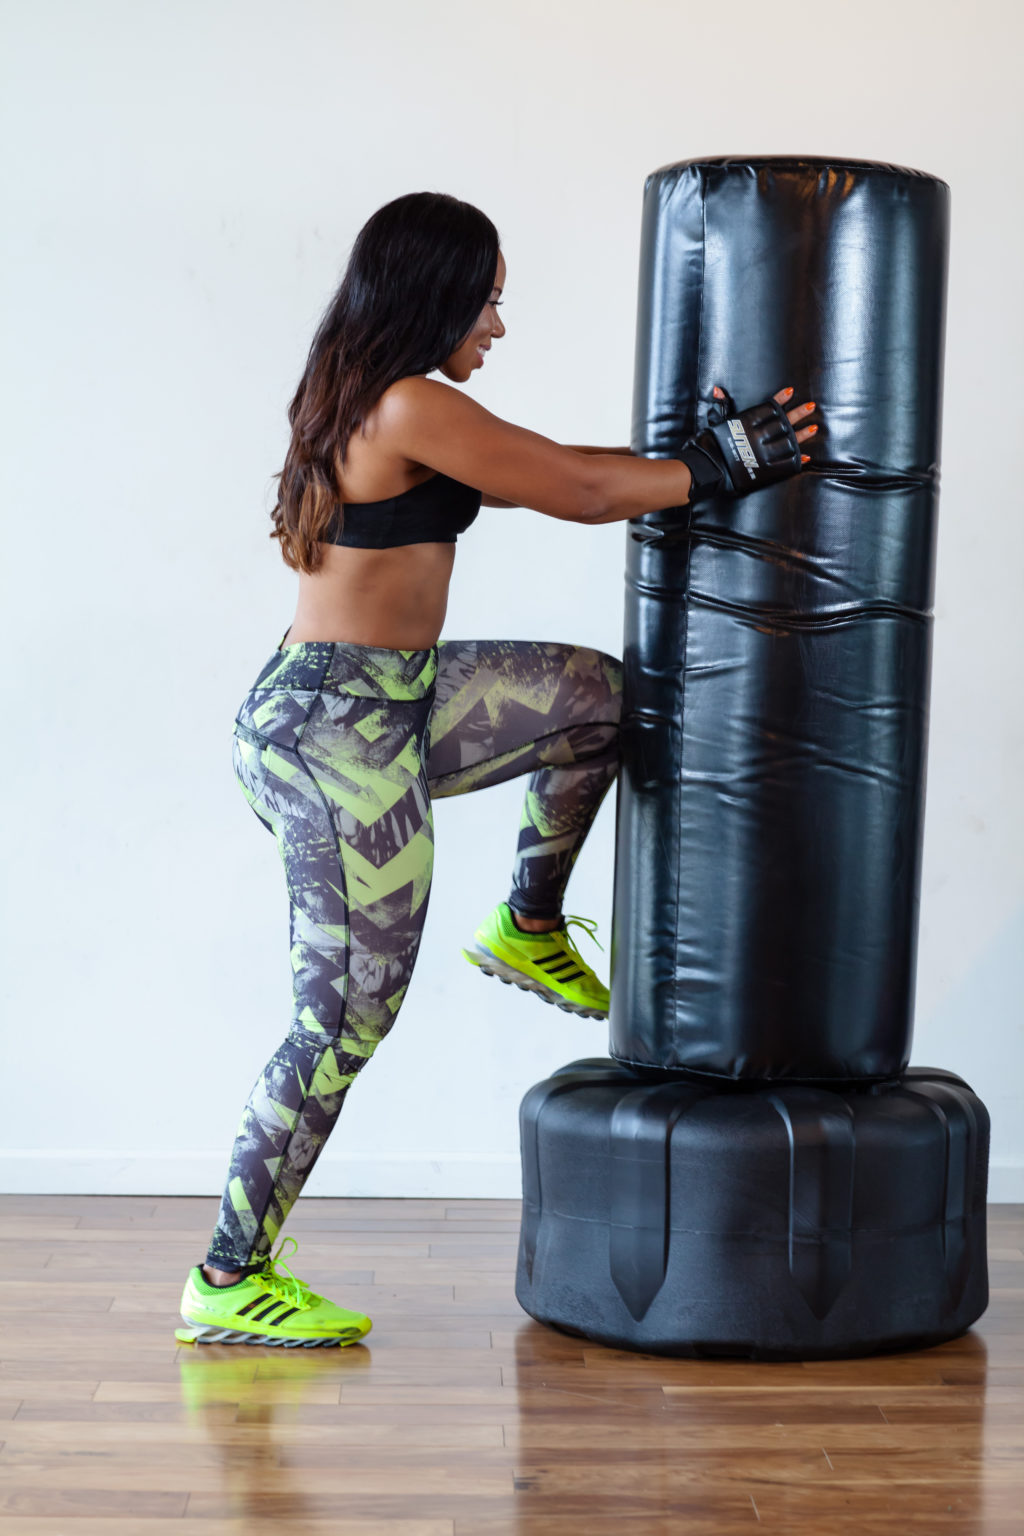 Personal Trainer Houston, Texas - Tatiana Scott